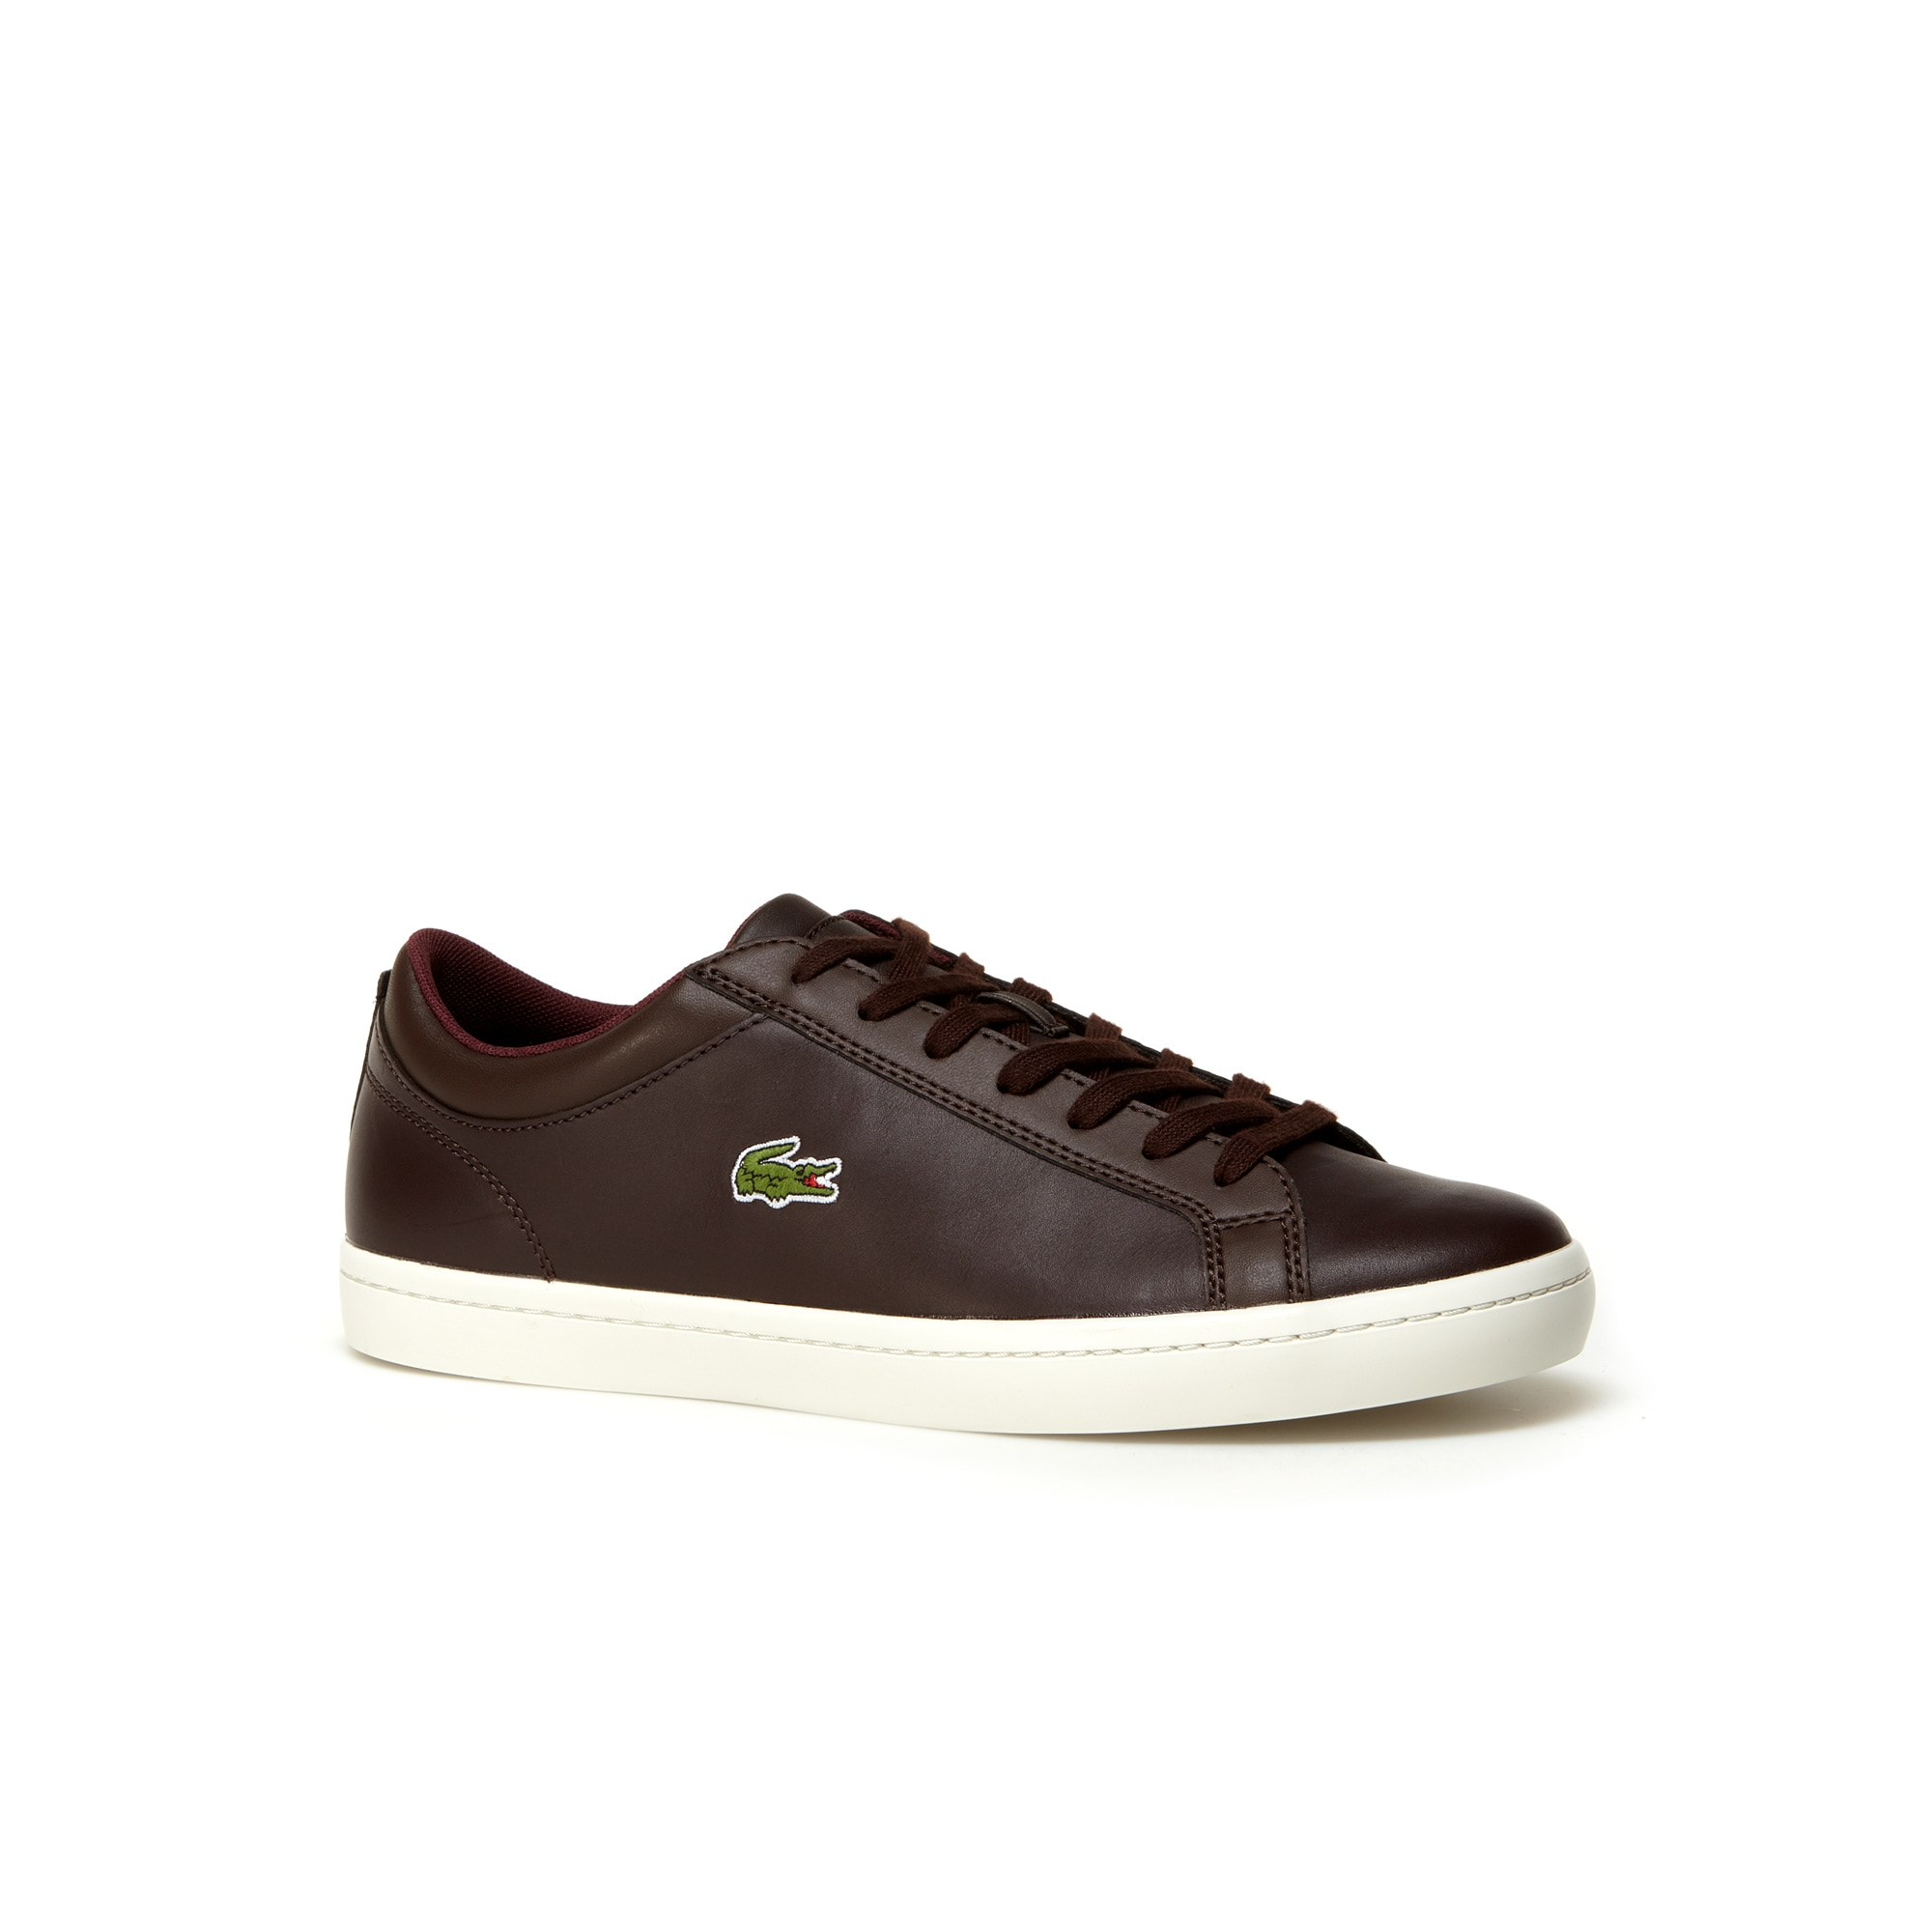 Men's Straightset SP Leather Trainers